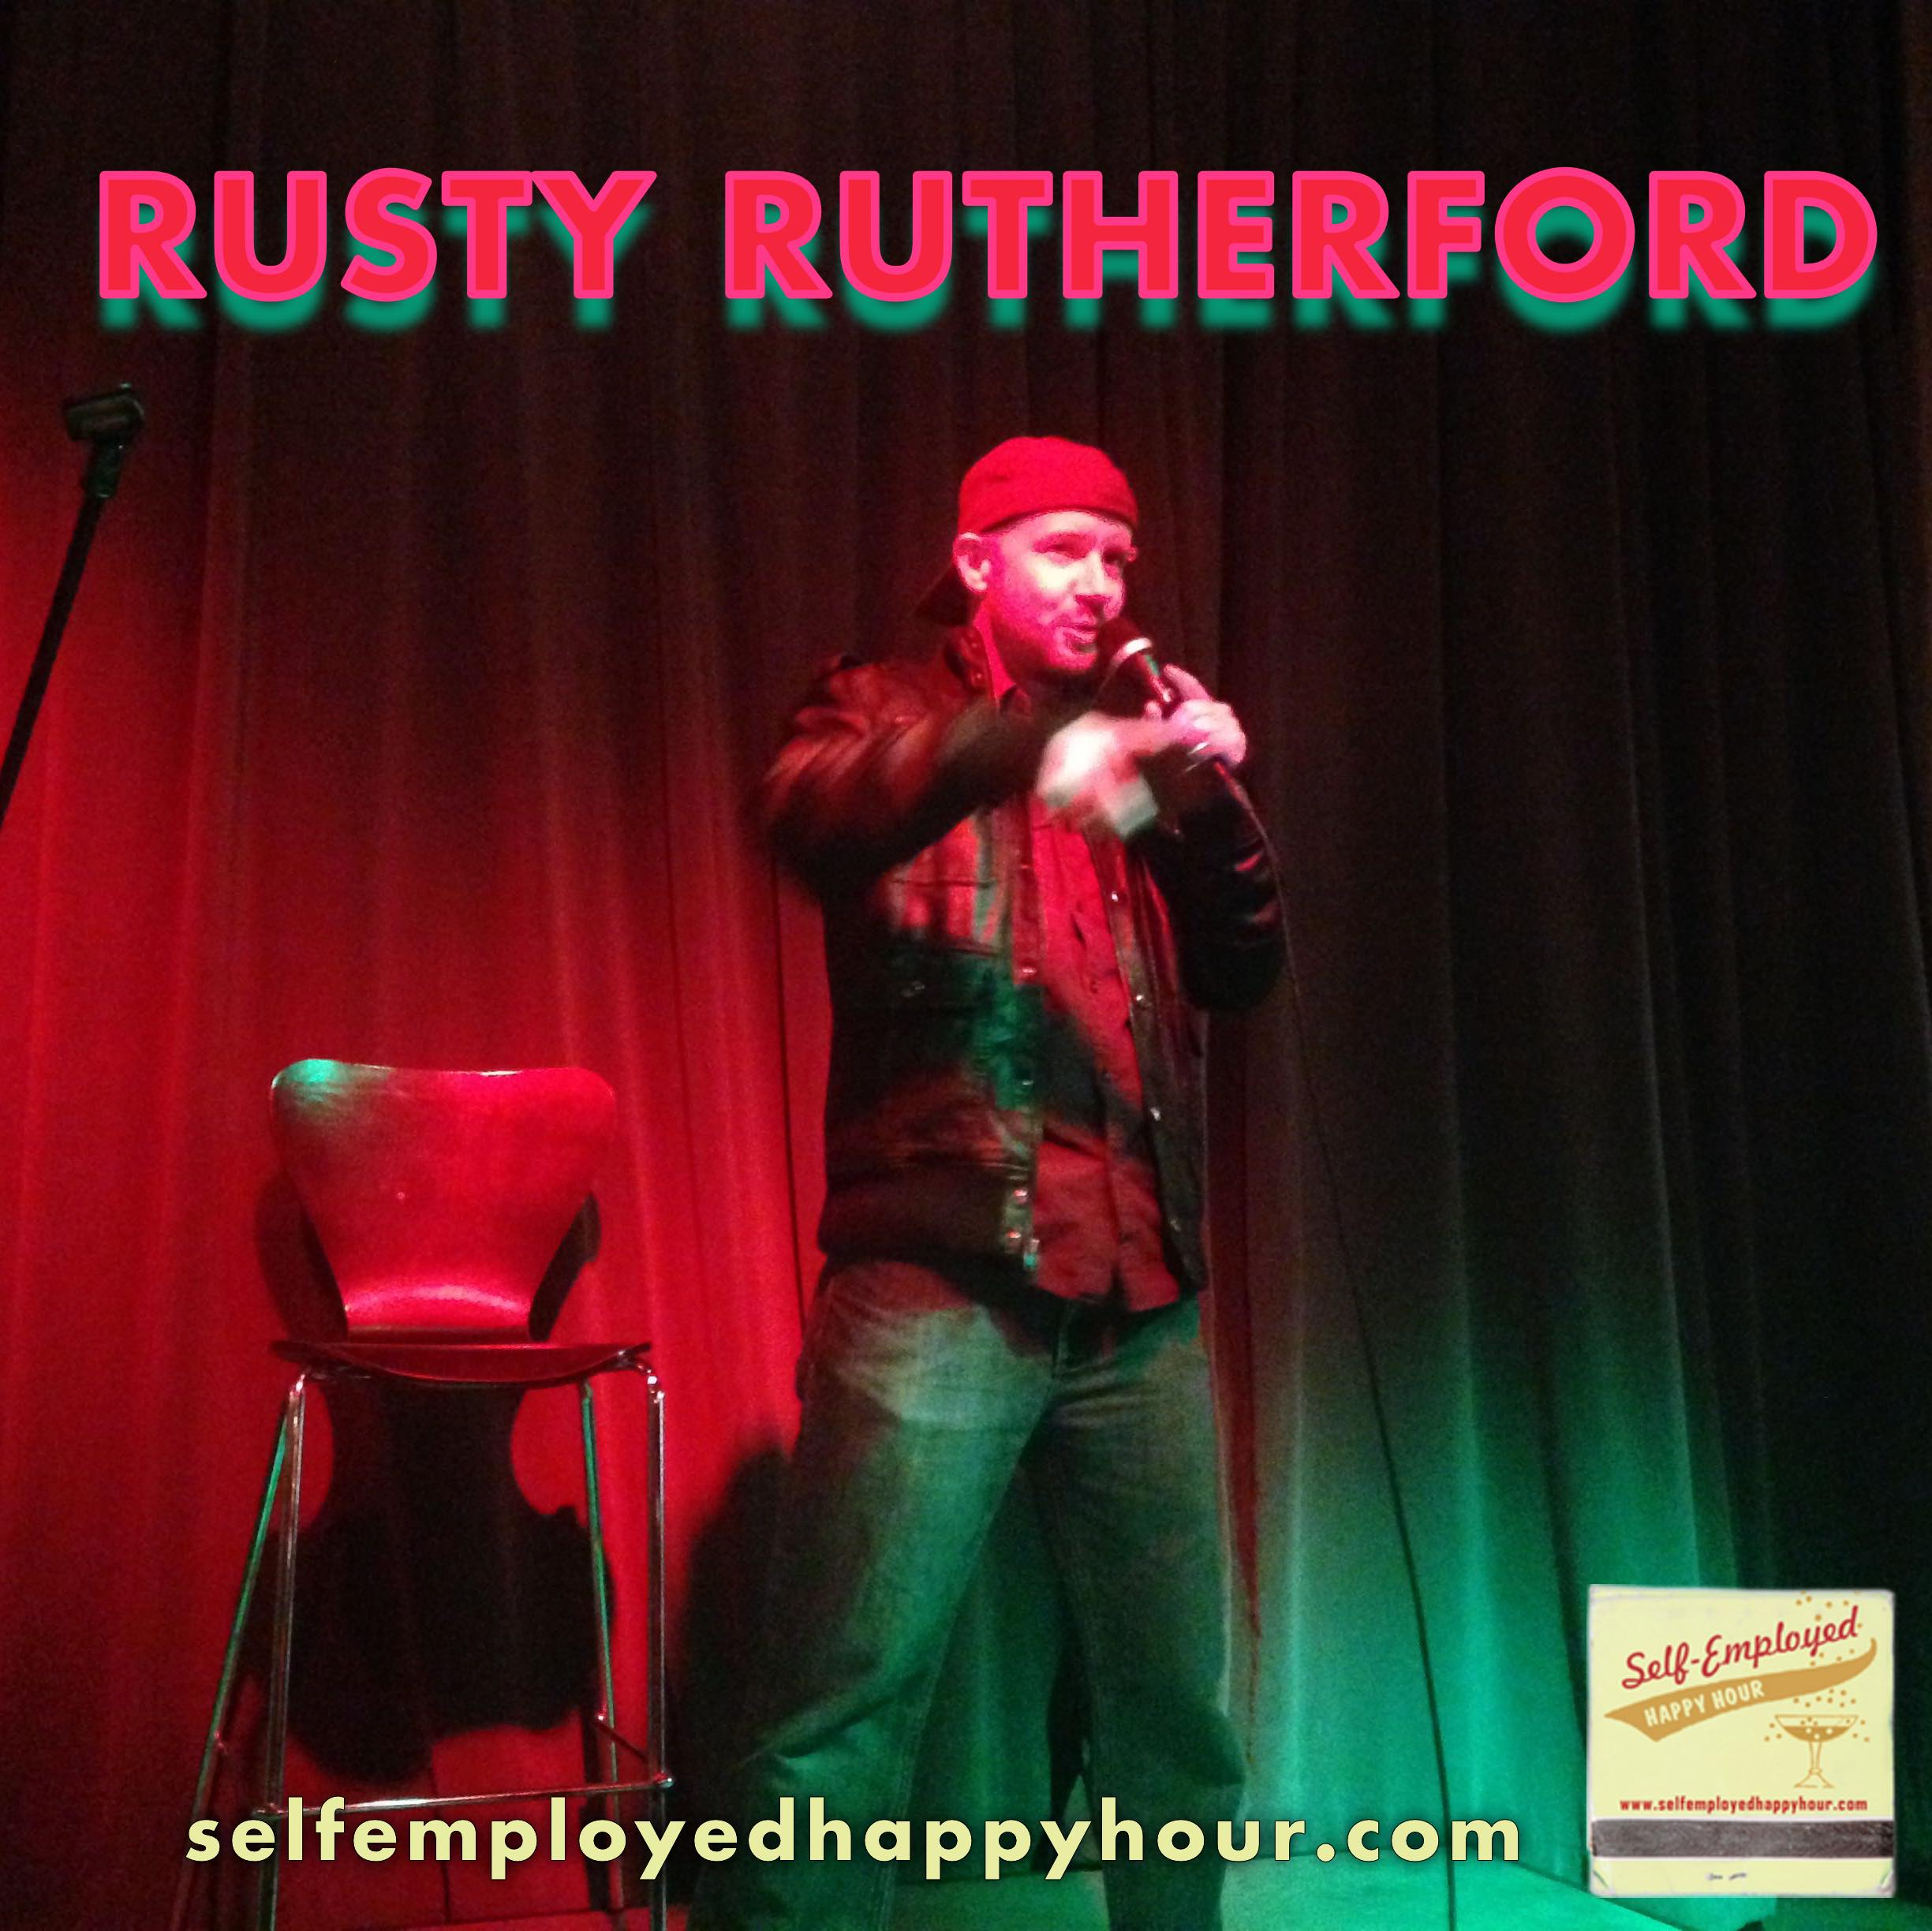 Rusty Rutherford